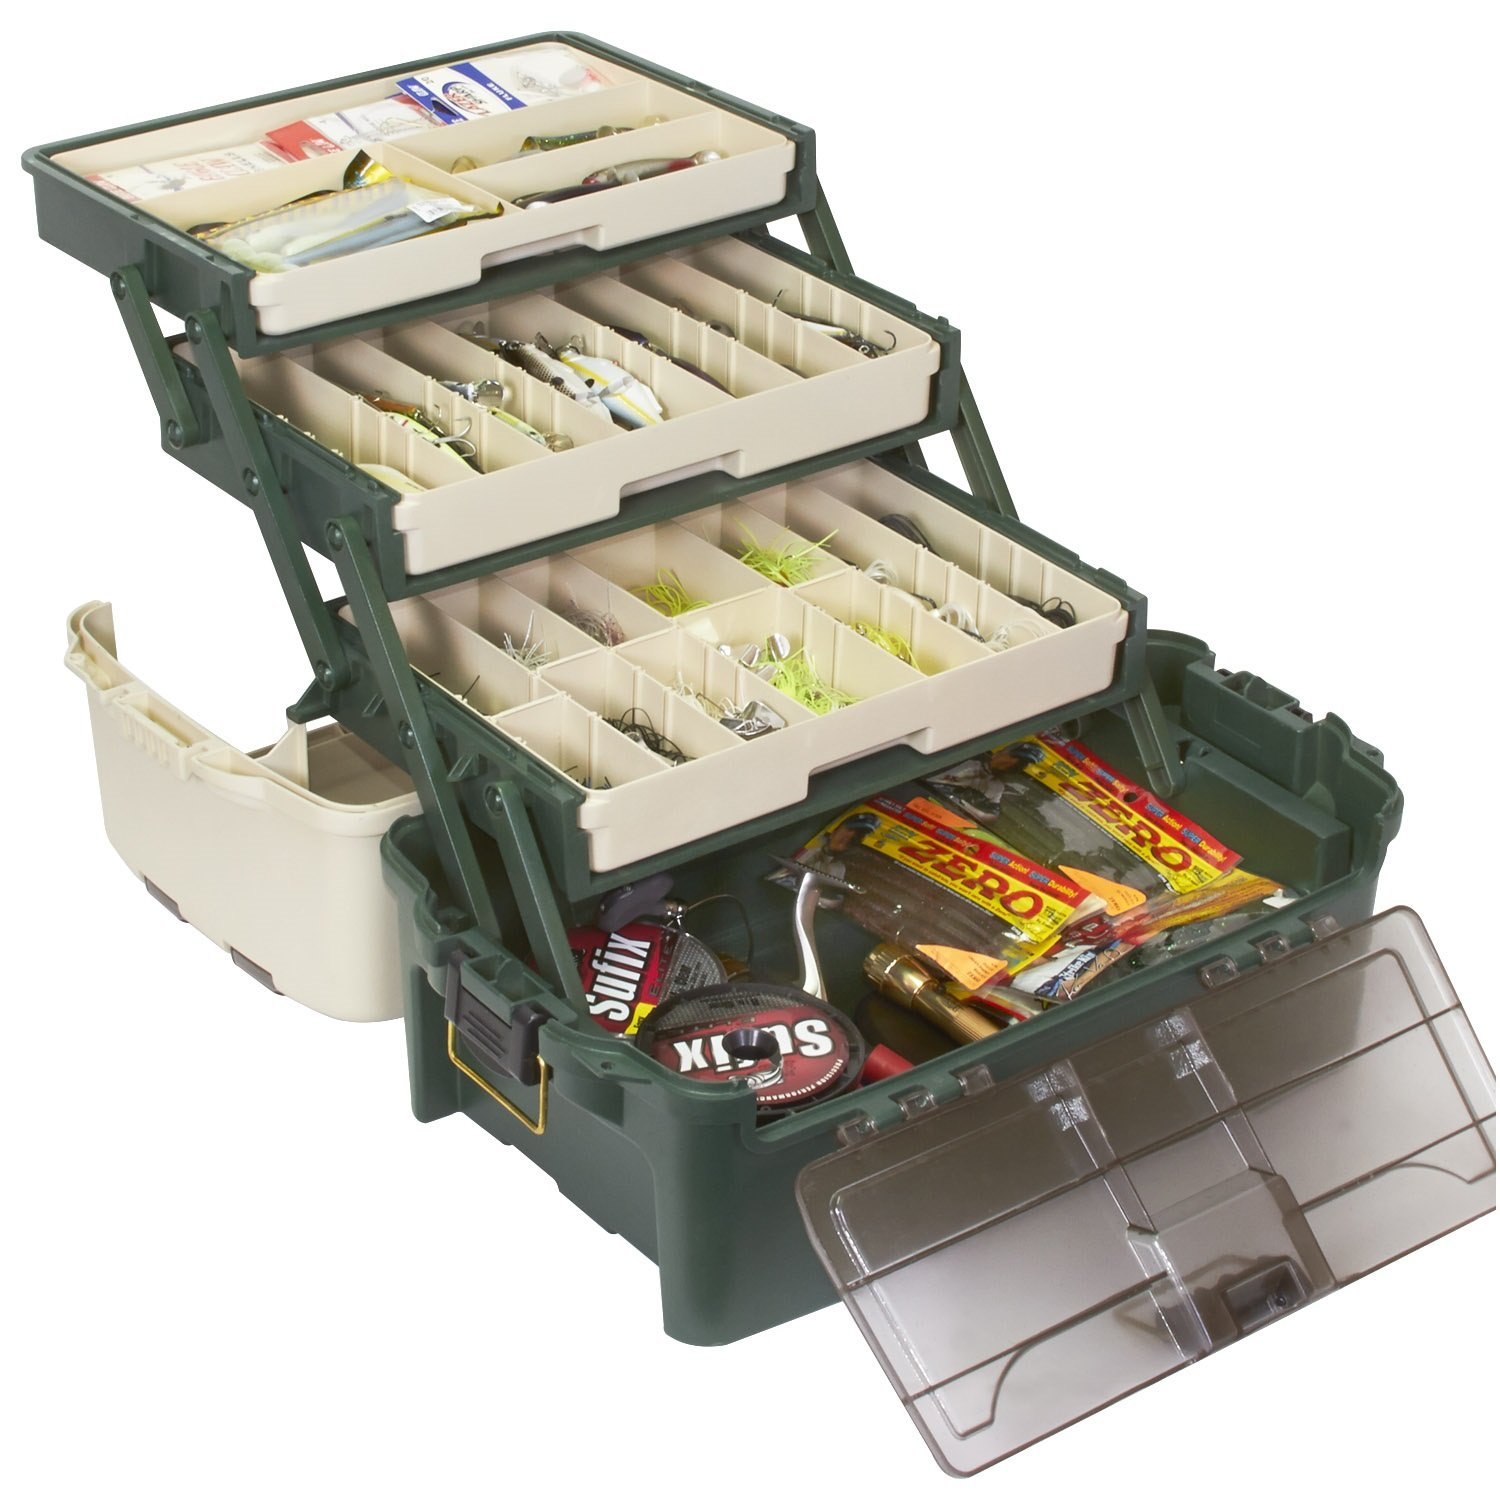 PLANO Tackle Systems Hybrid Hip 3 Tray Box, White/Blue by Plano: Amazon.es: Deportes y aire libre